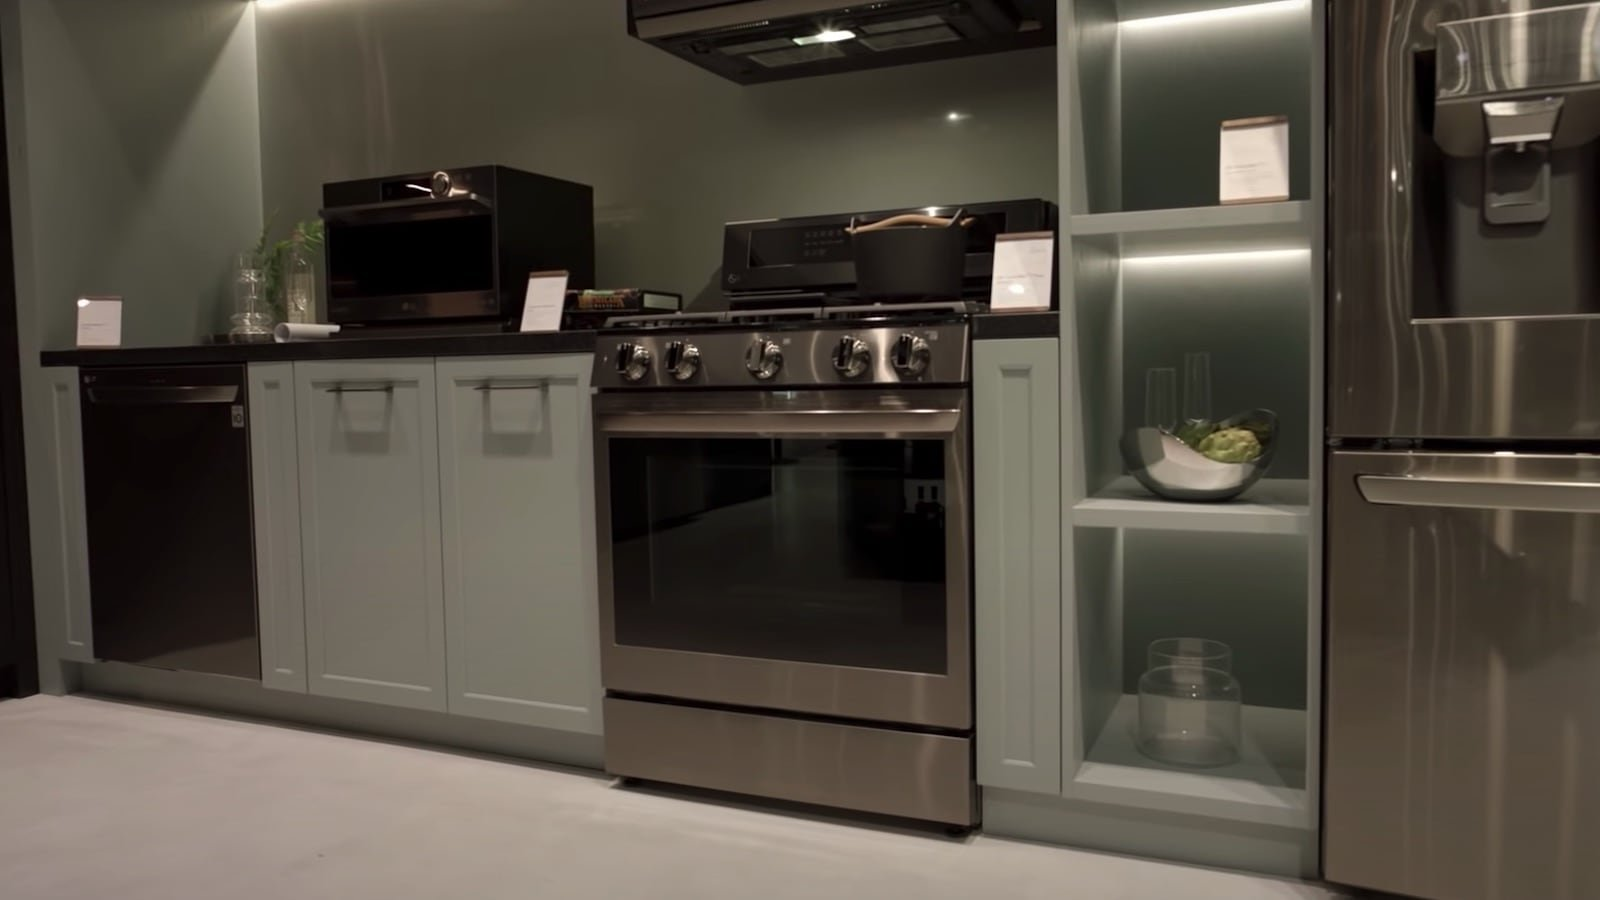 LG InstaView Range gas and electric ovens include a built-in air fryer